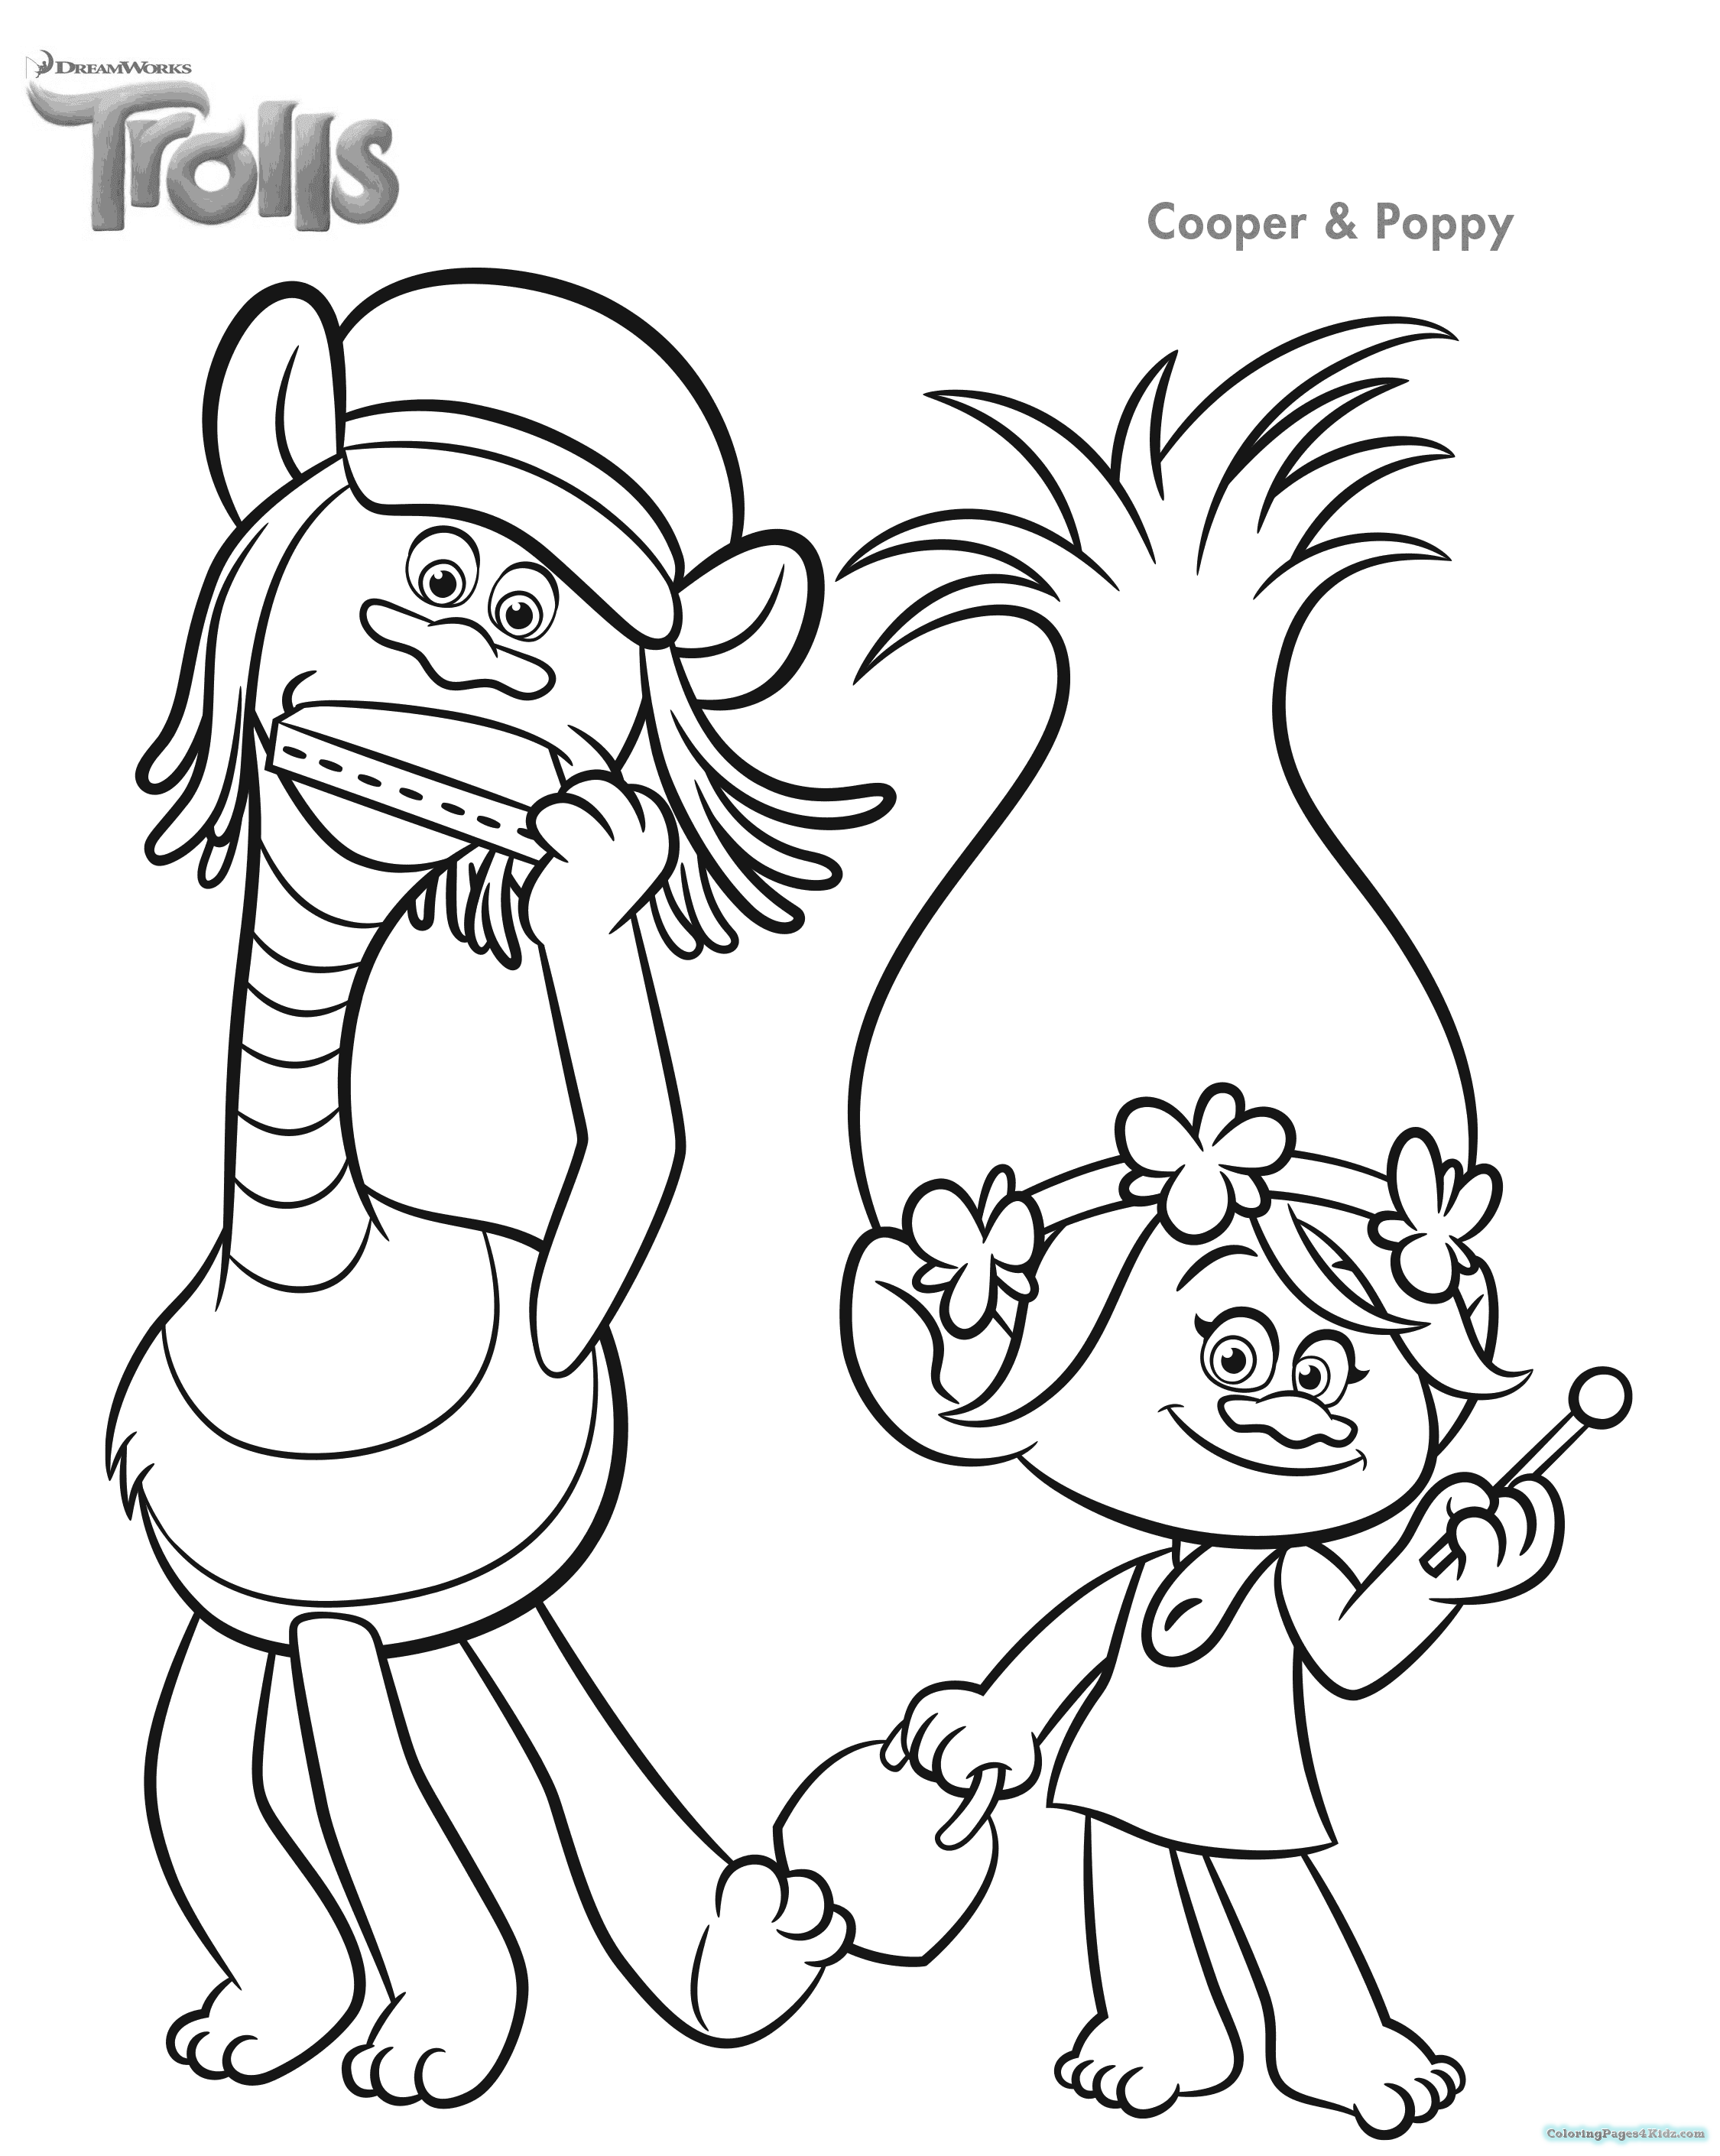 2250x2820 Trolls Dreamworks Coloring Pages Coloring Pages For Kids